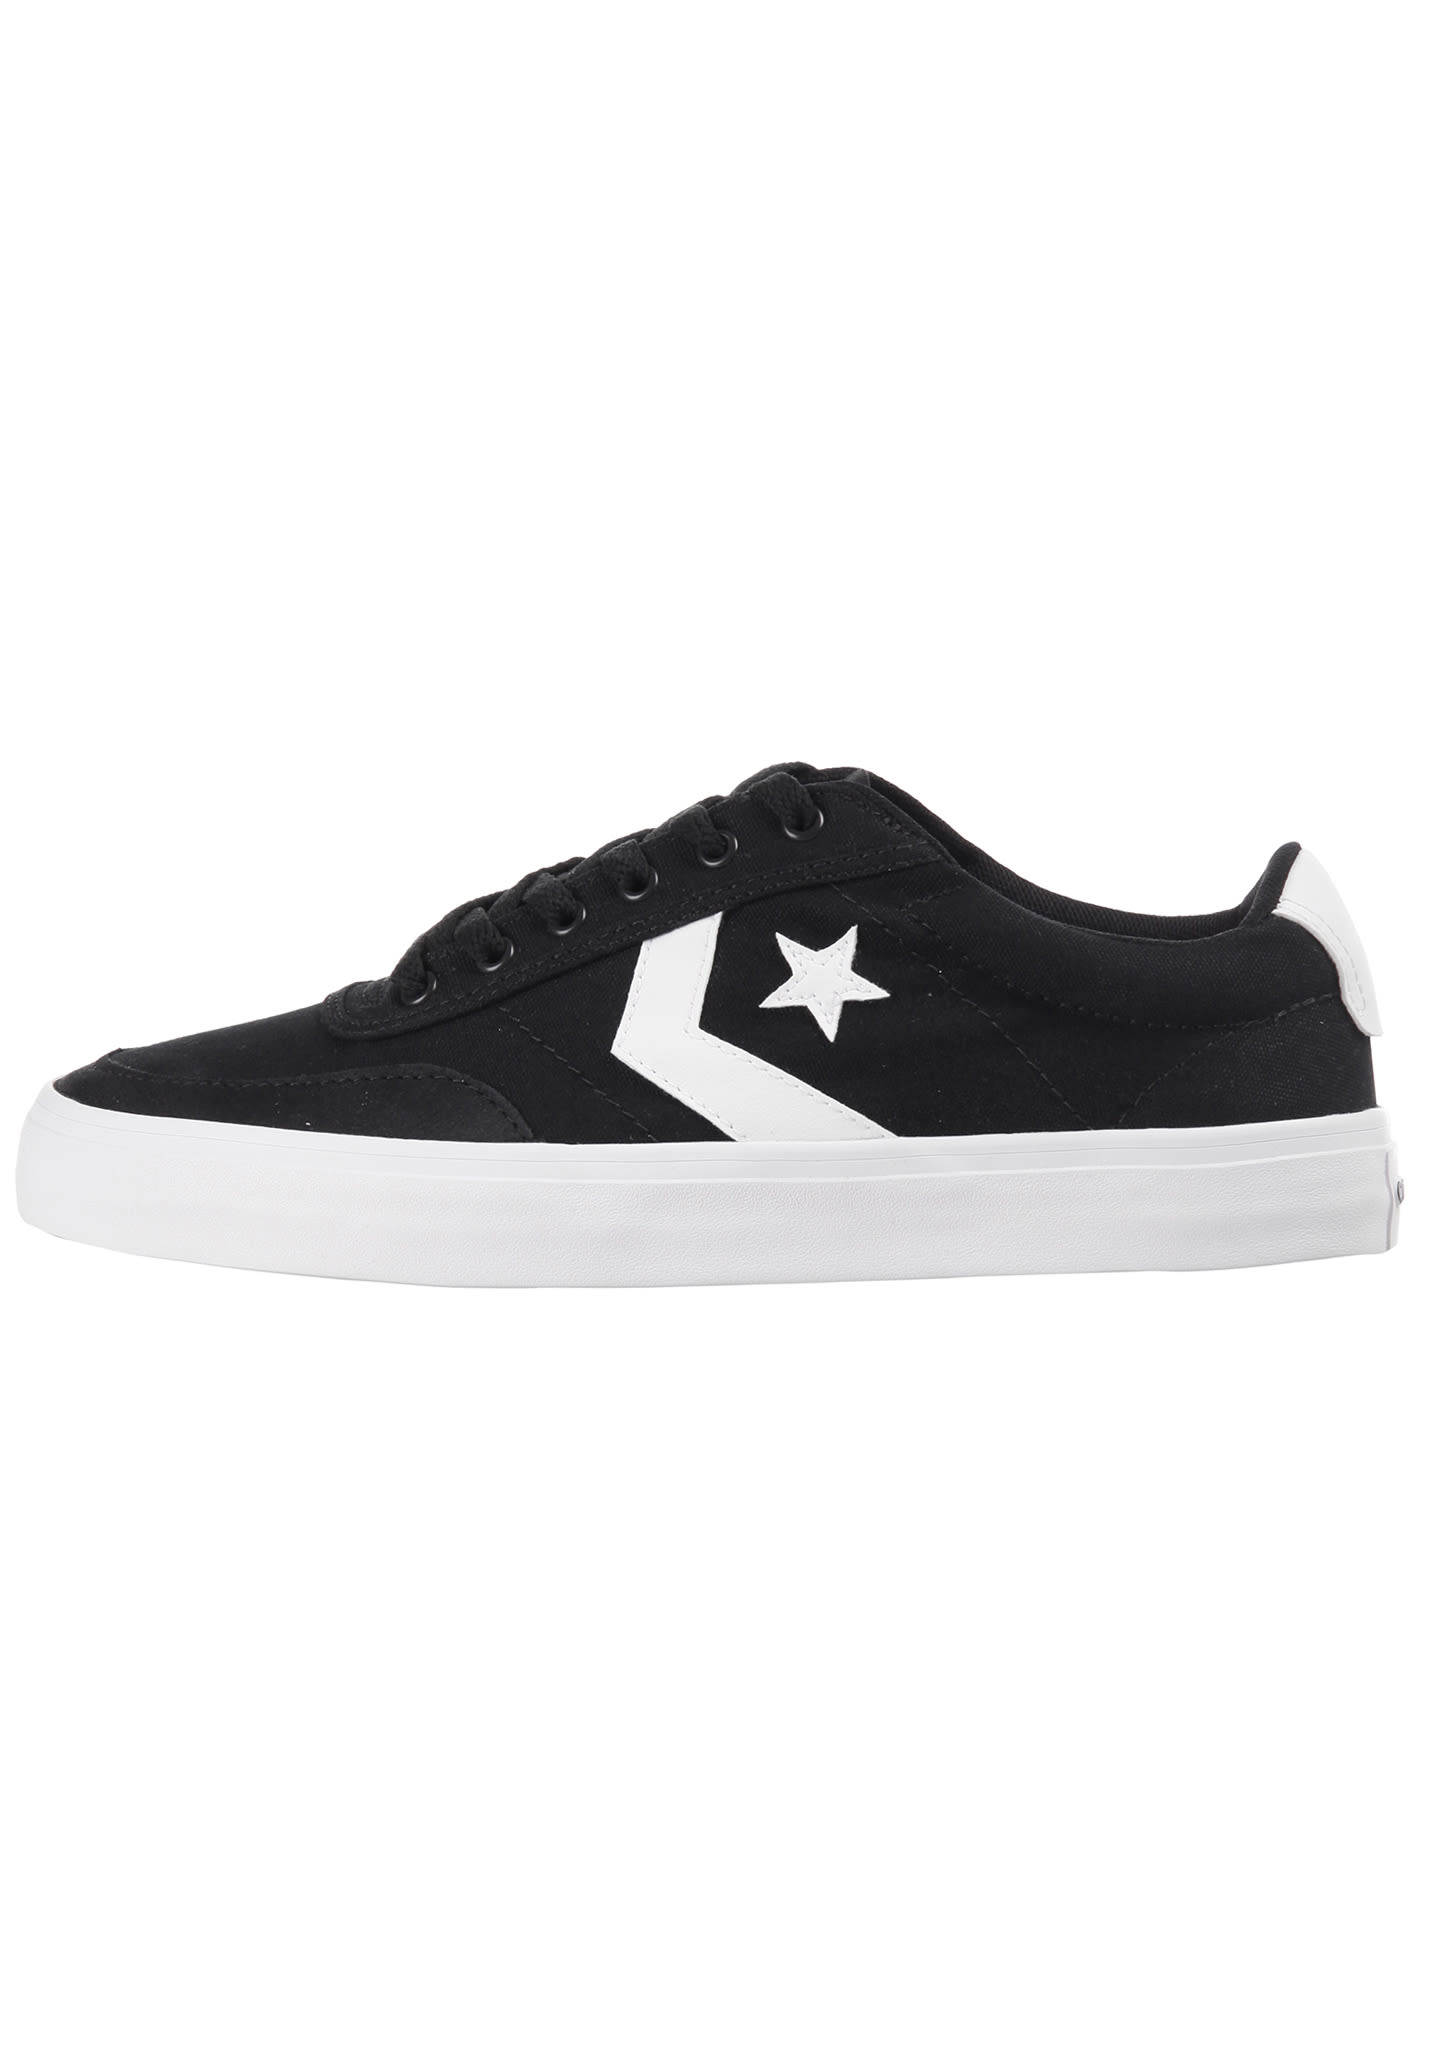 243291341991 Converse Courtland OX - Sneakers for Men - Black - Planet Sports